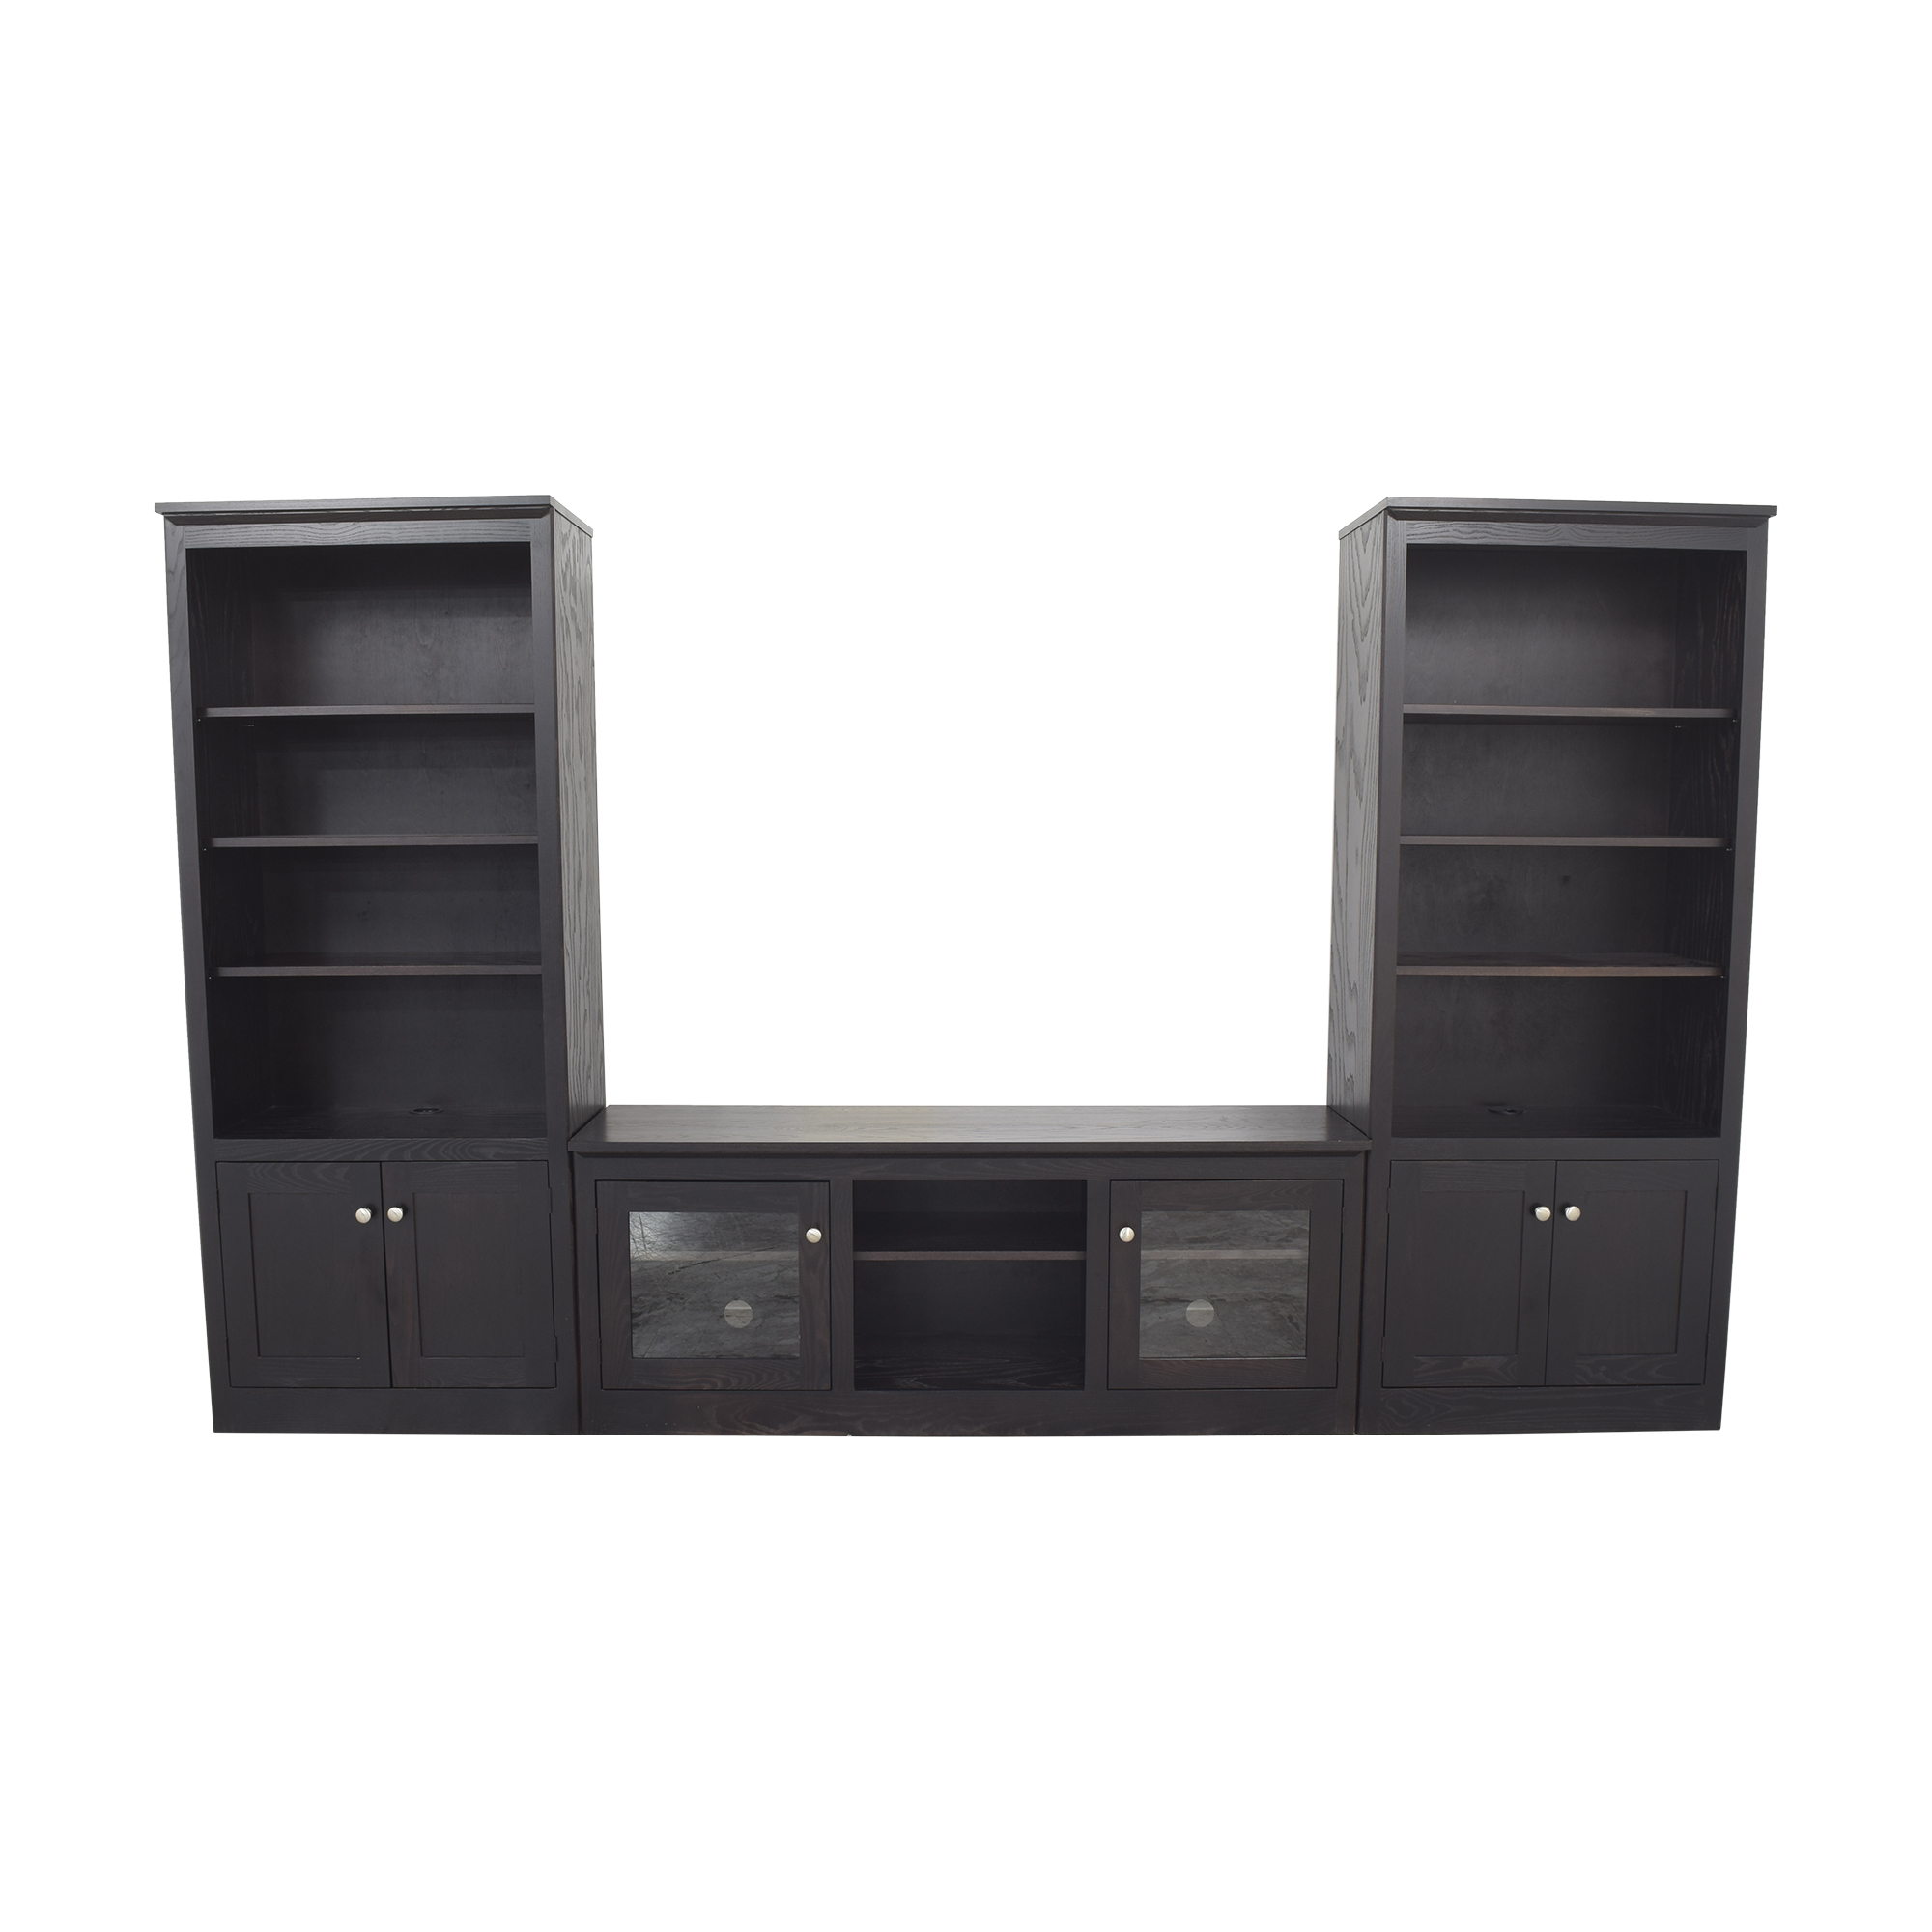 buy Crate & Barrel Media Center and Towers Crate & Barrel